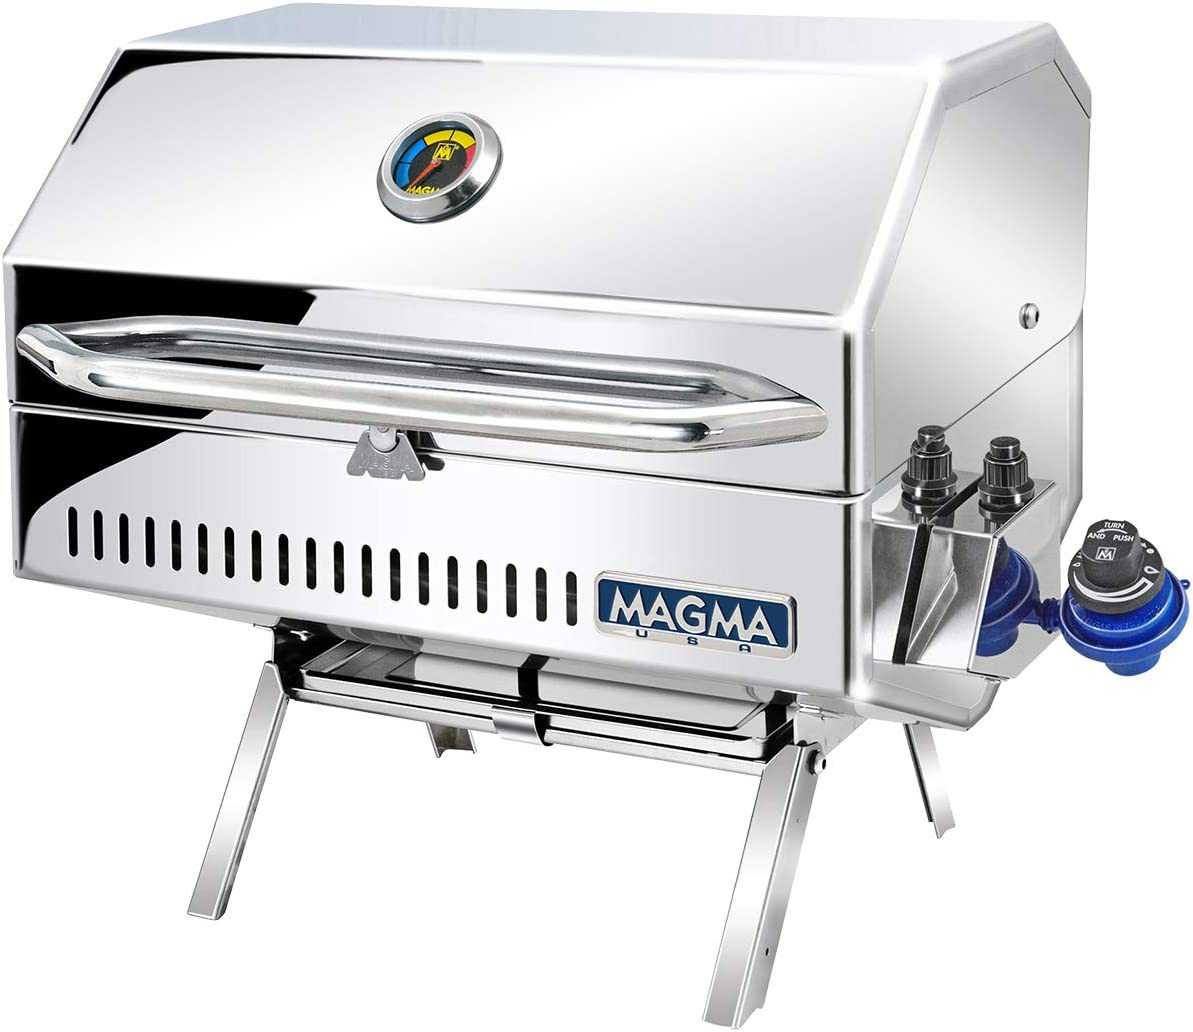 Magma Products Catalina 2 Gourmet Series Gas Grill, Polished Stainless Steel